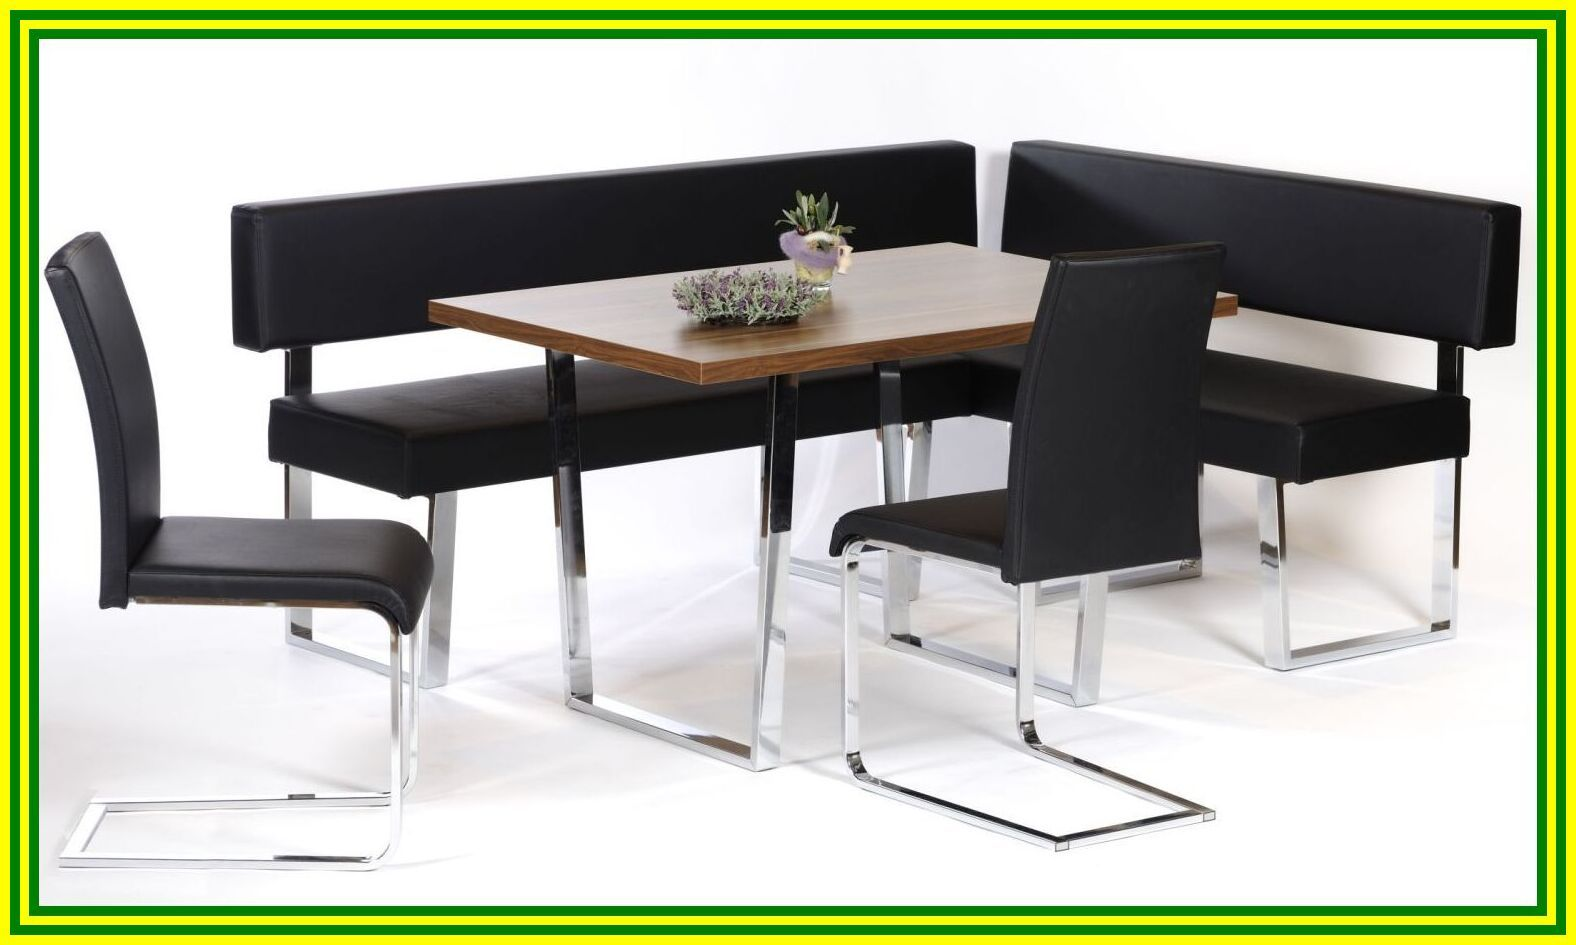 43 Reference Of Leather Bench Seat For Dining Table In 2020 Booth Dining Table Dining Table Design Booth Seating In Kitchen